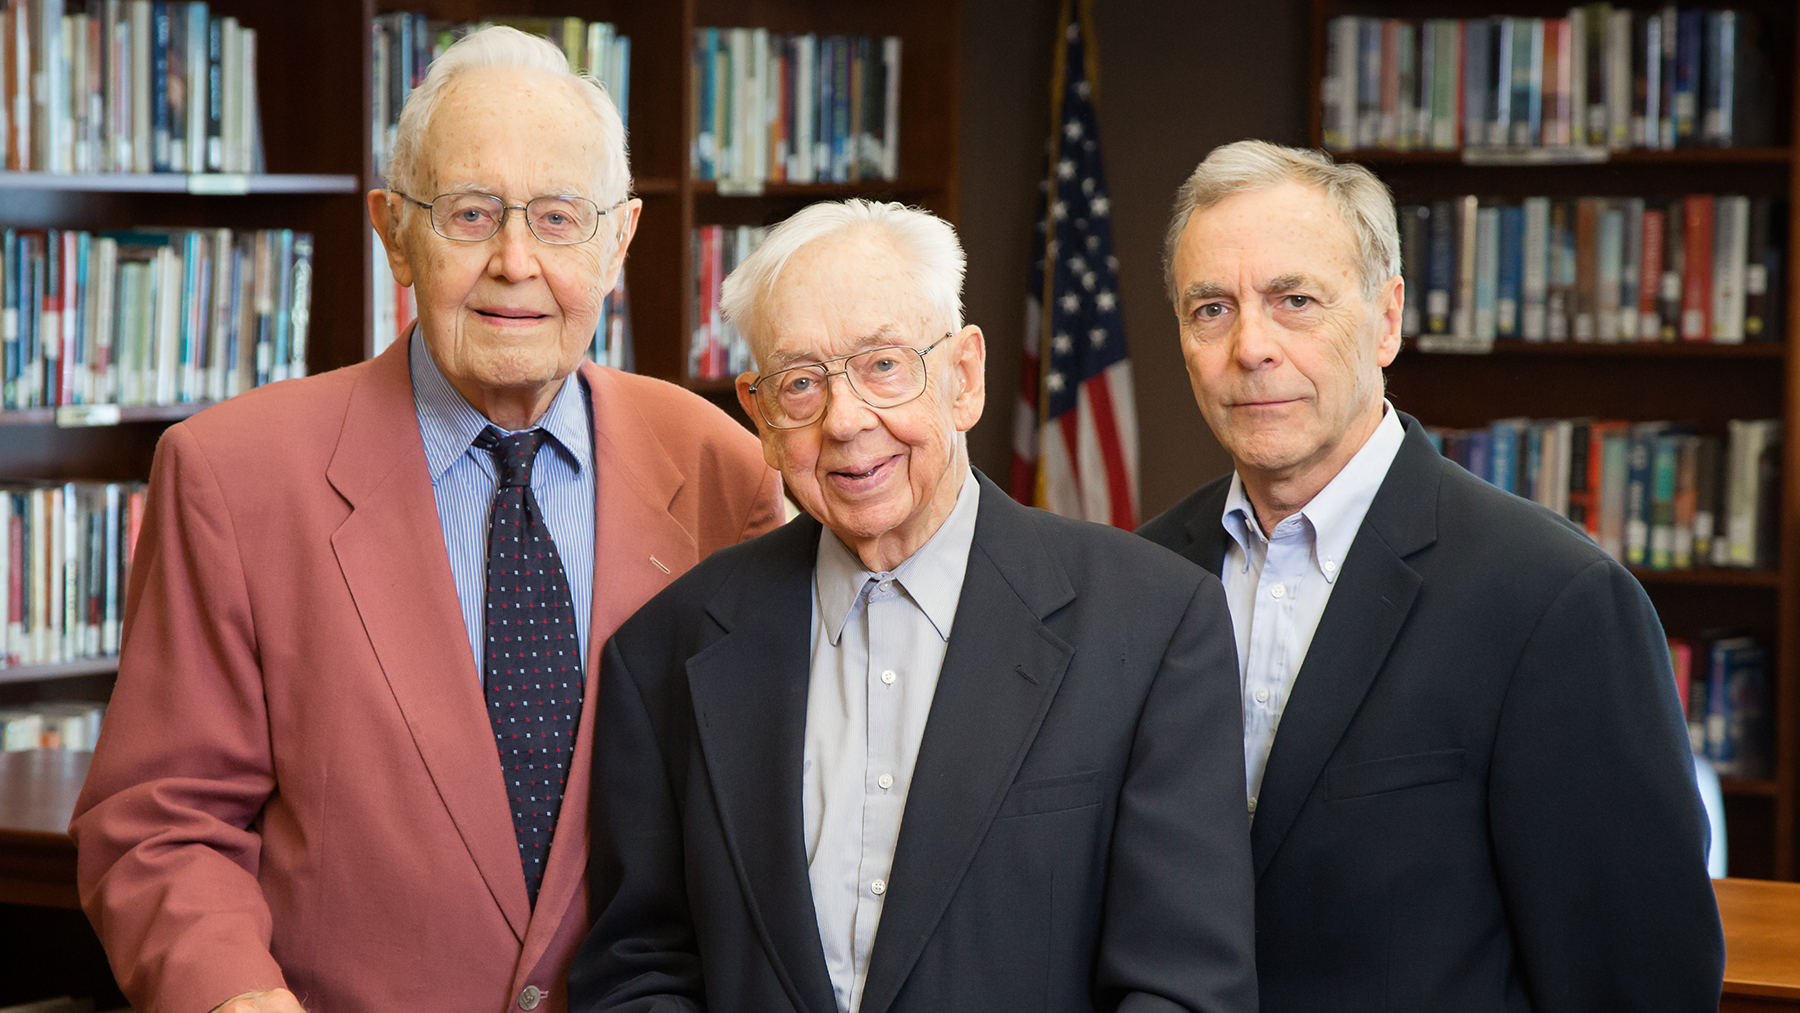 Recipients of the Chancellor's Medallion Winton Solberg, Maynard Brichford, and William Maher. Photo by L. B. Stauffer